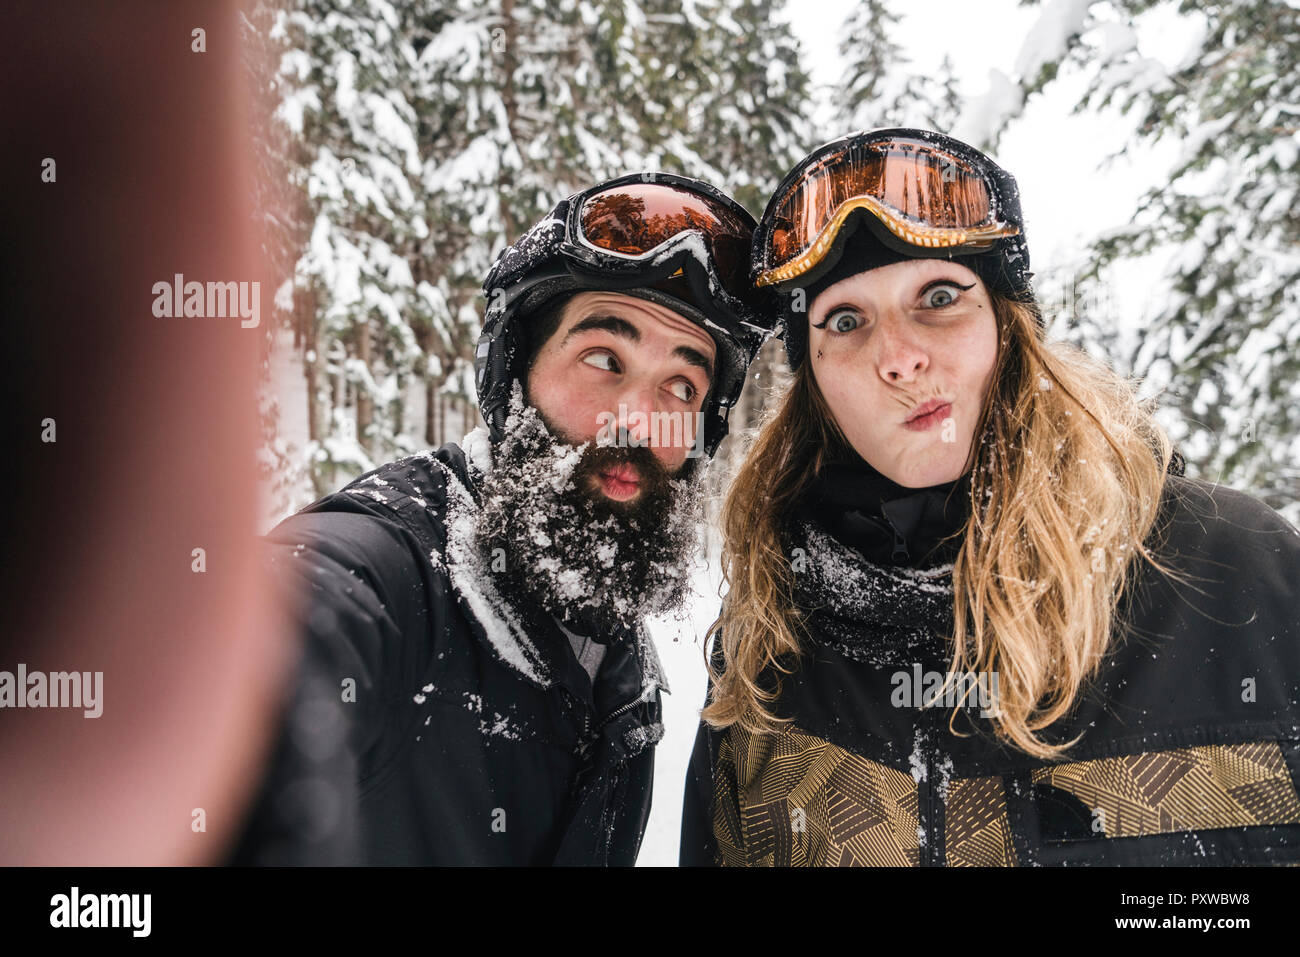 Selfie of happy couple in skiwear grimacing in winter forest - Stock Image